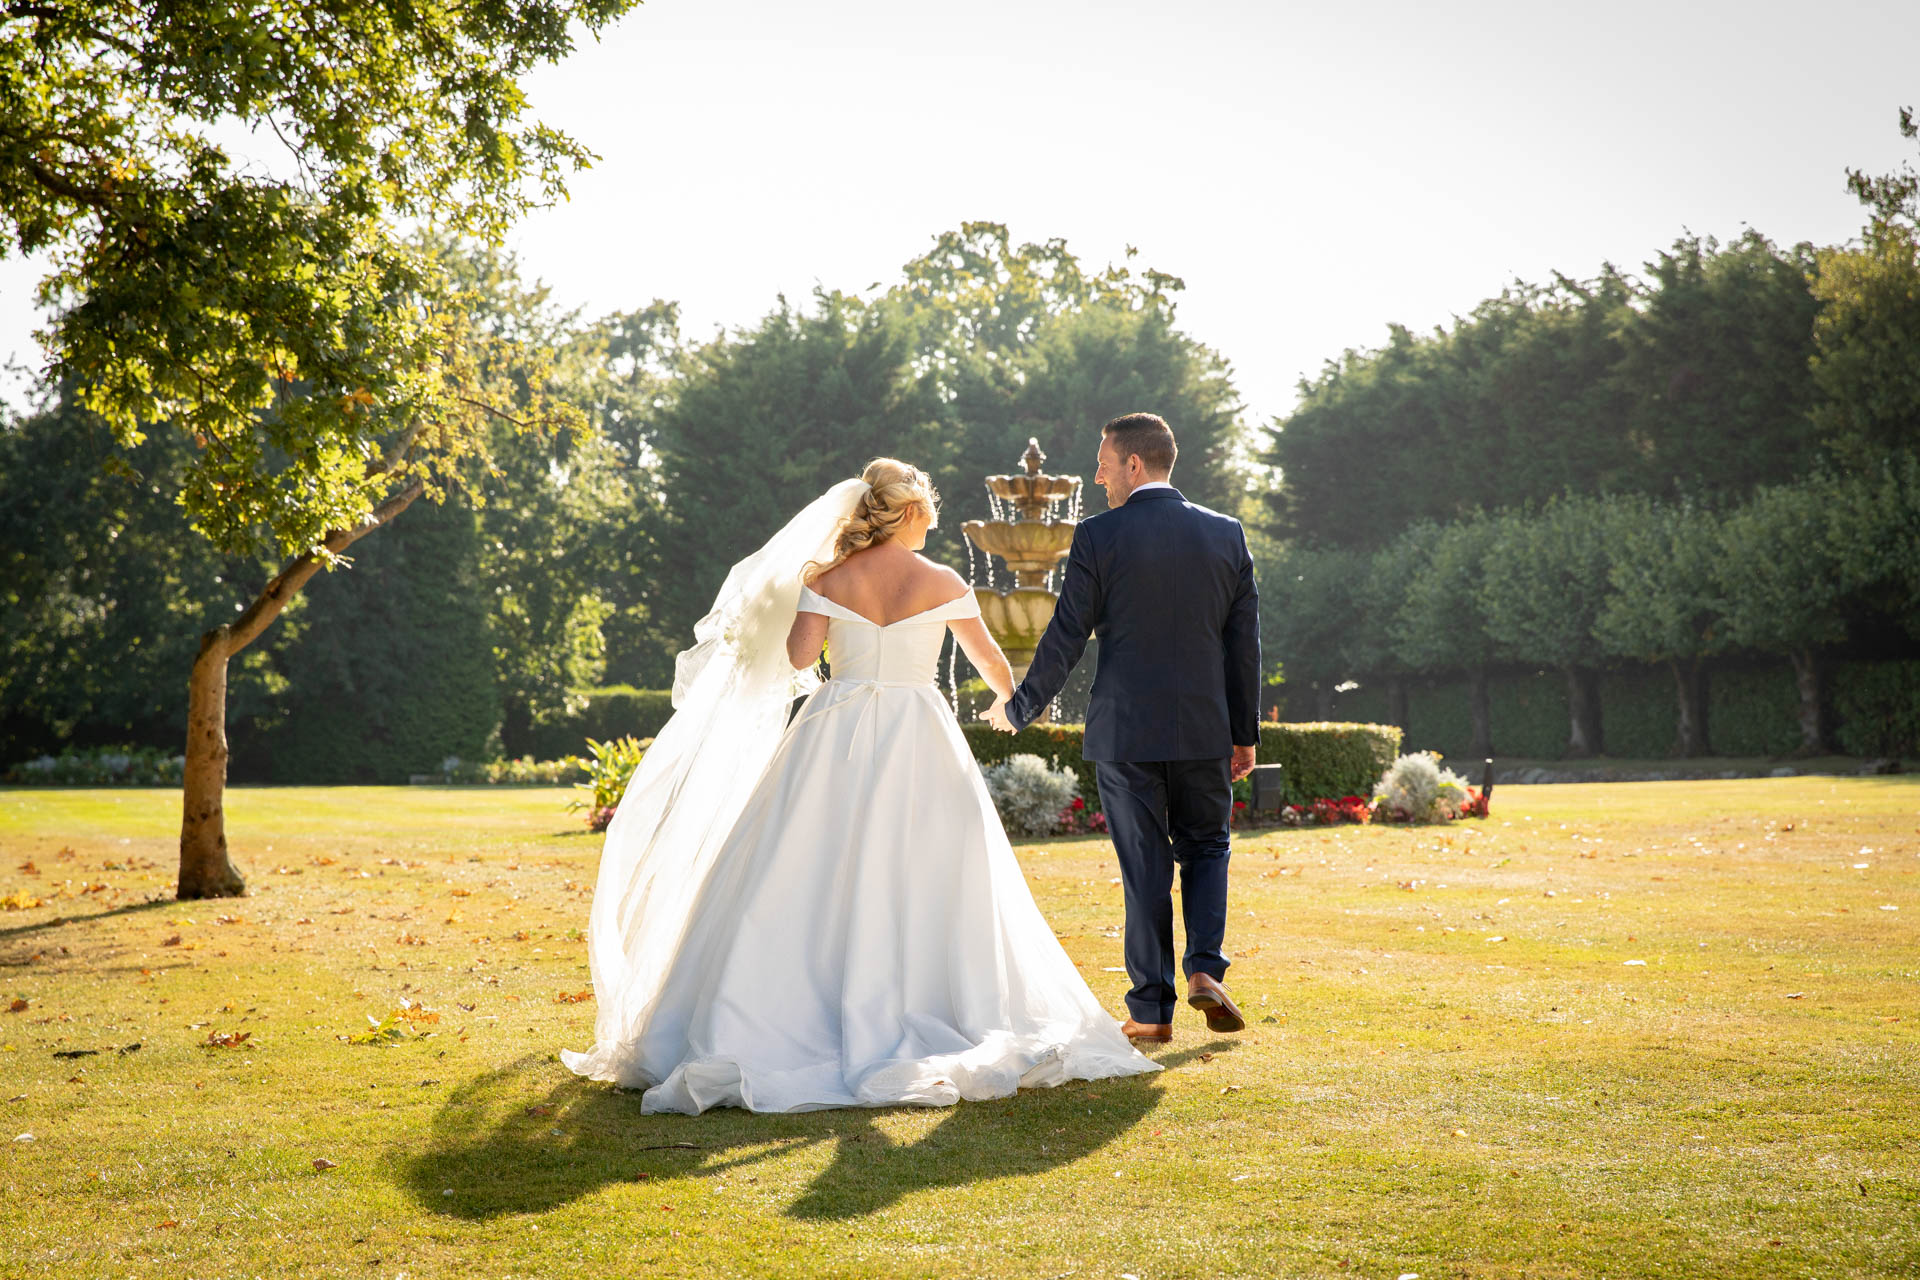 Bride and groom photography in gardens at The Lawn Rochford